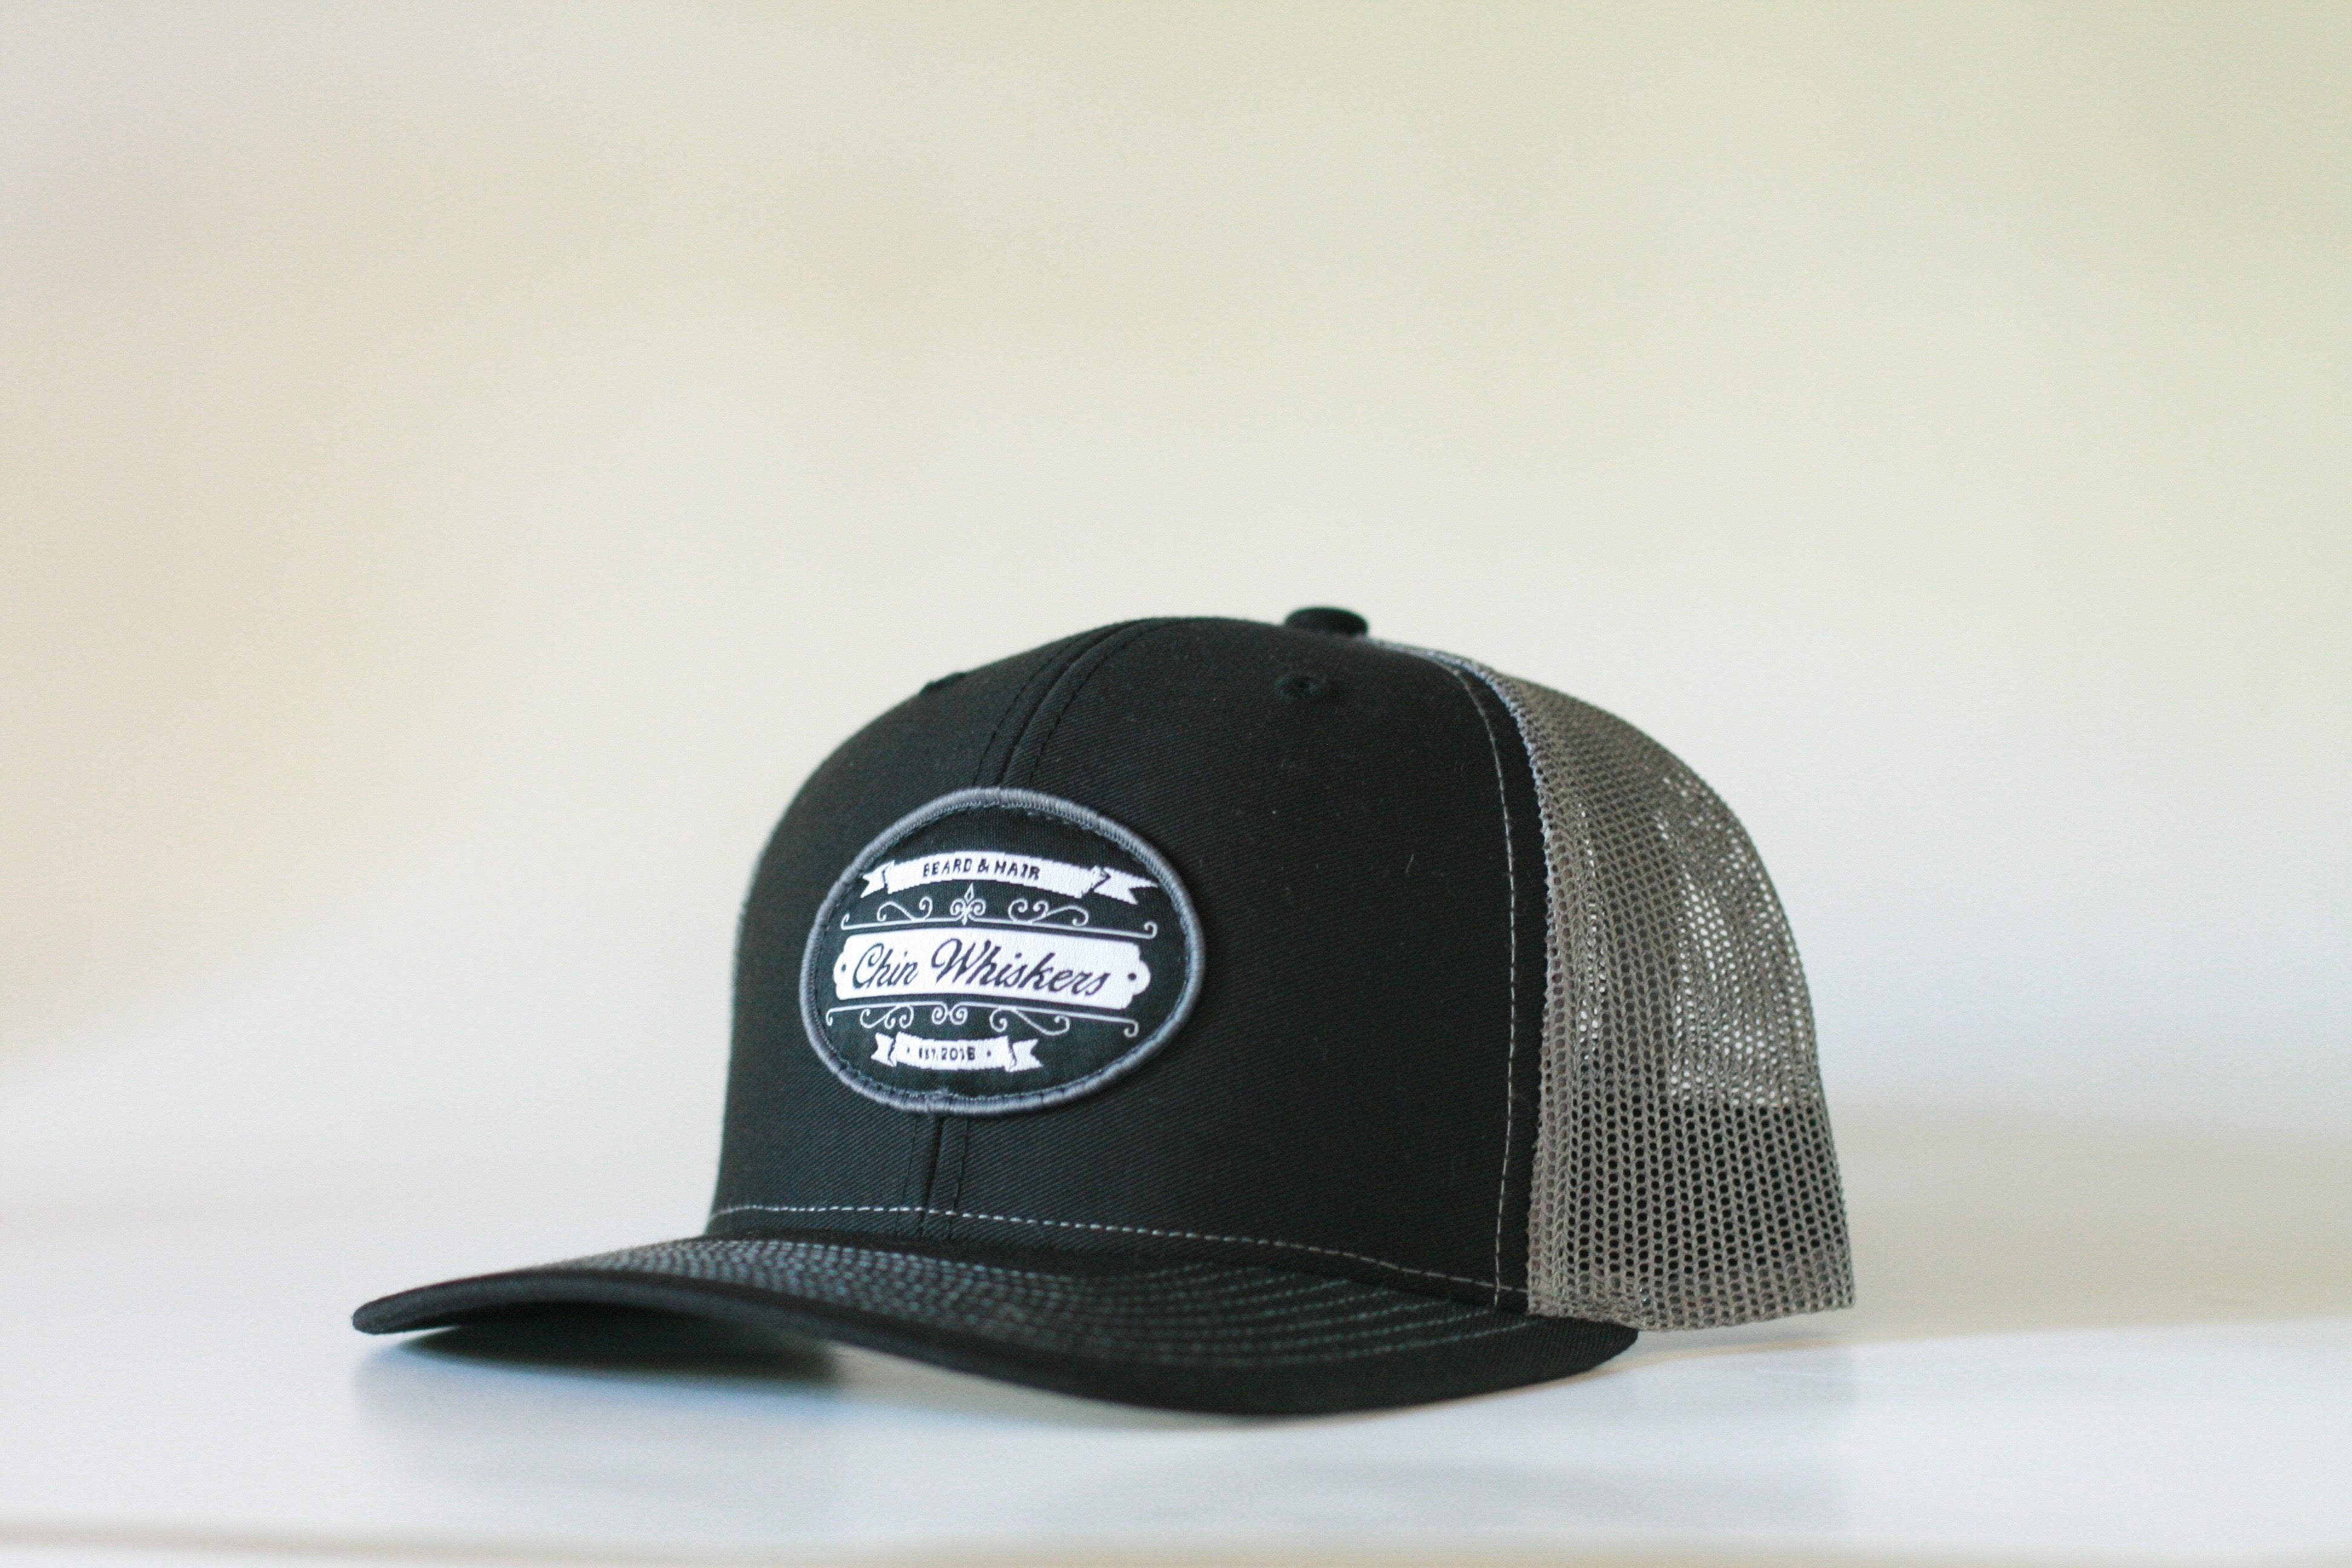 Chin Whiskers Flat Brim FlexFit Snapback - Chin Whiskers Grooming Co ac66f339ecb1